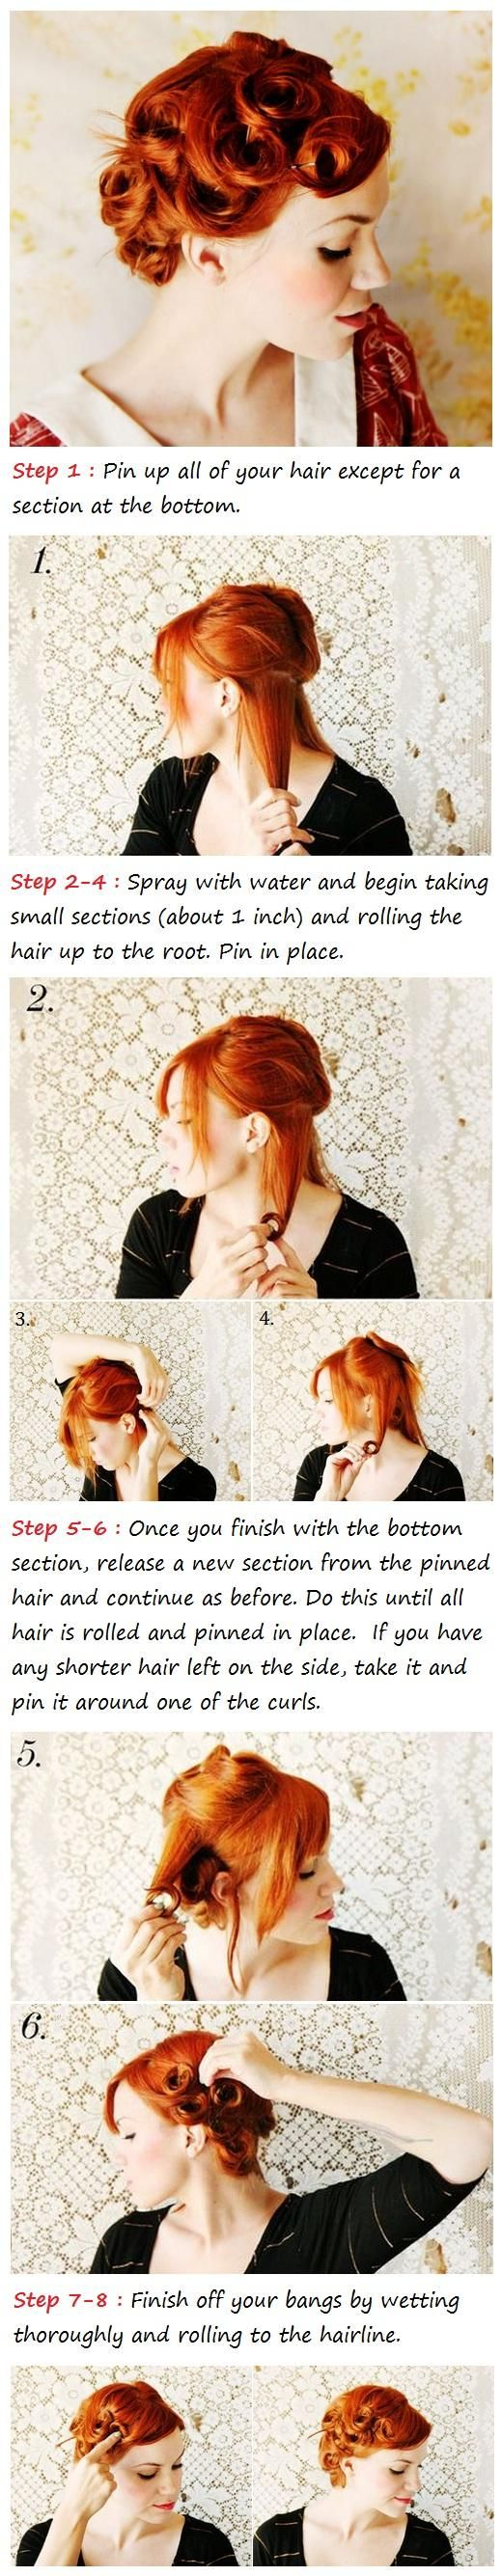 Pin Curls Hair Tutorial  **Cute! Already to this by pinning them at the back - never thought to pin them all around.